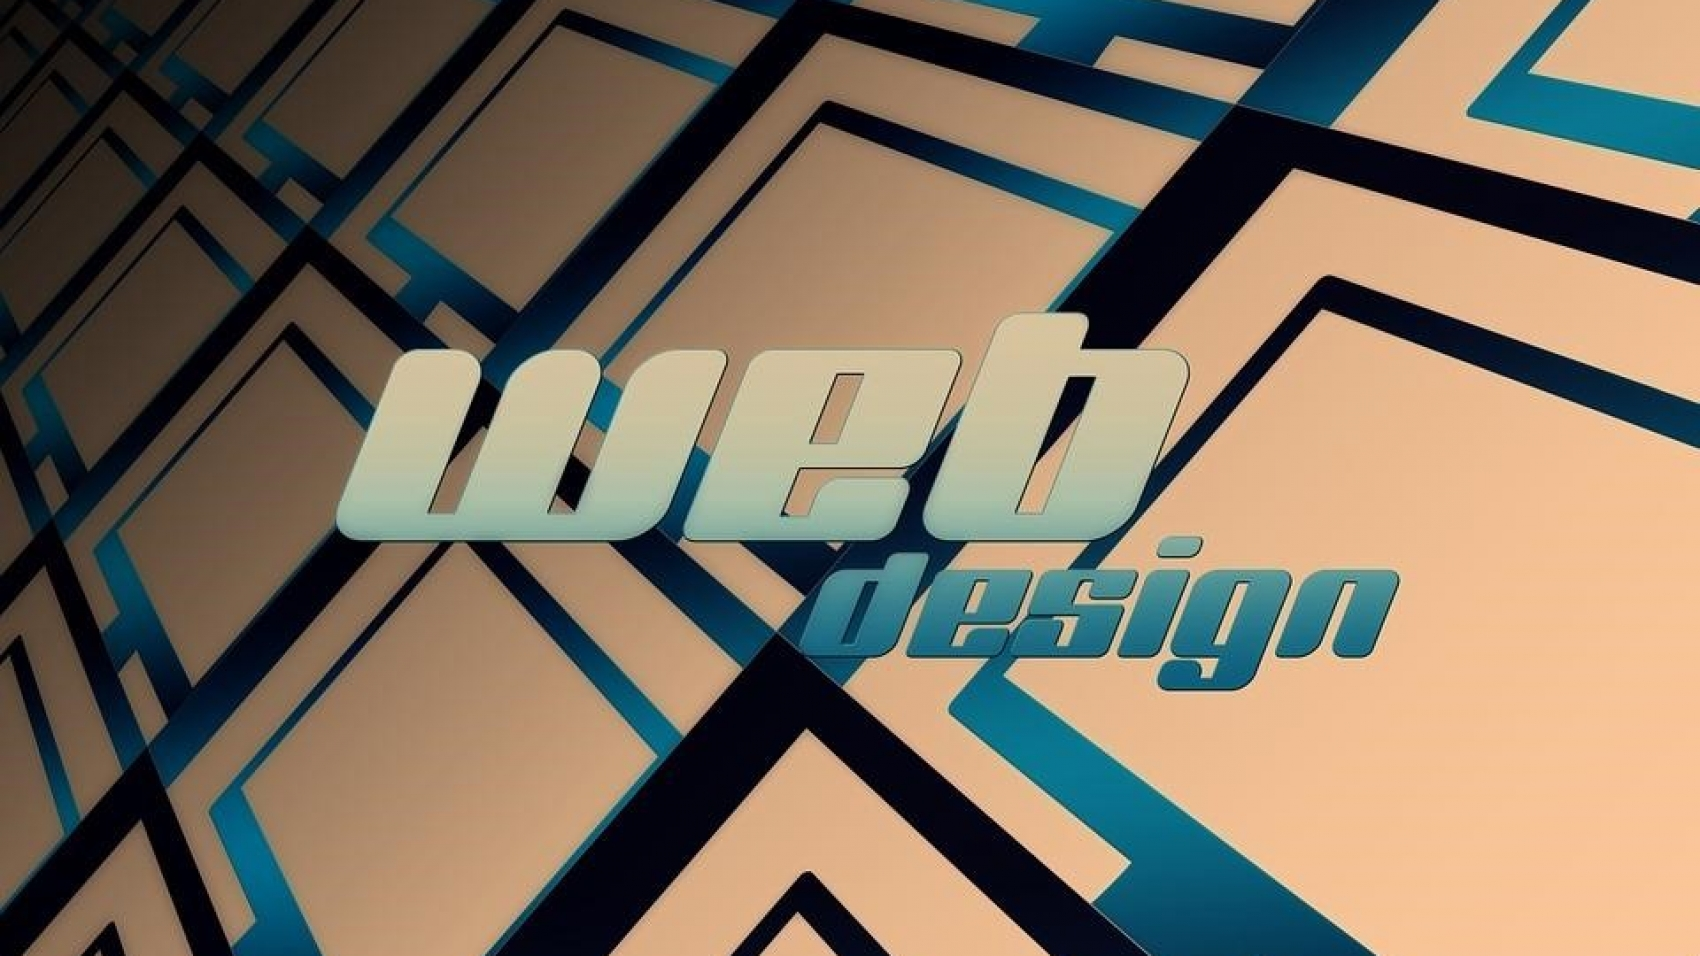 The most common web design mistakes